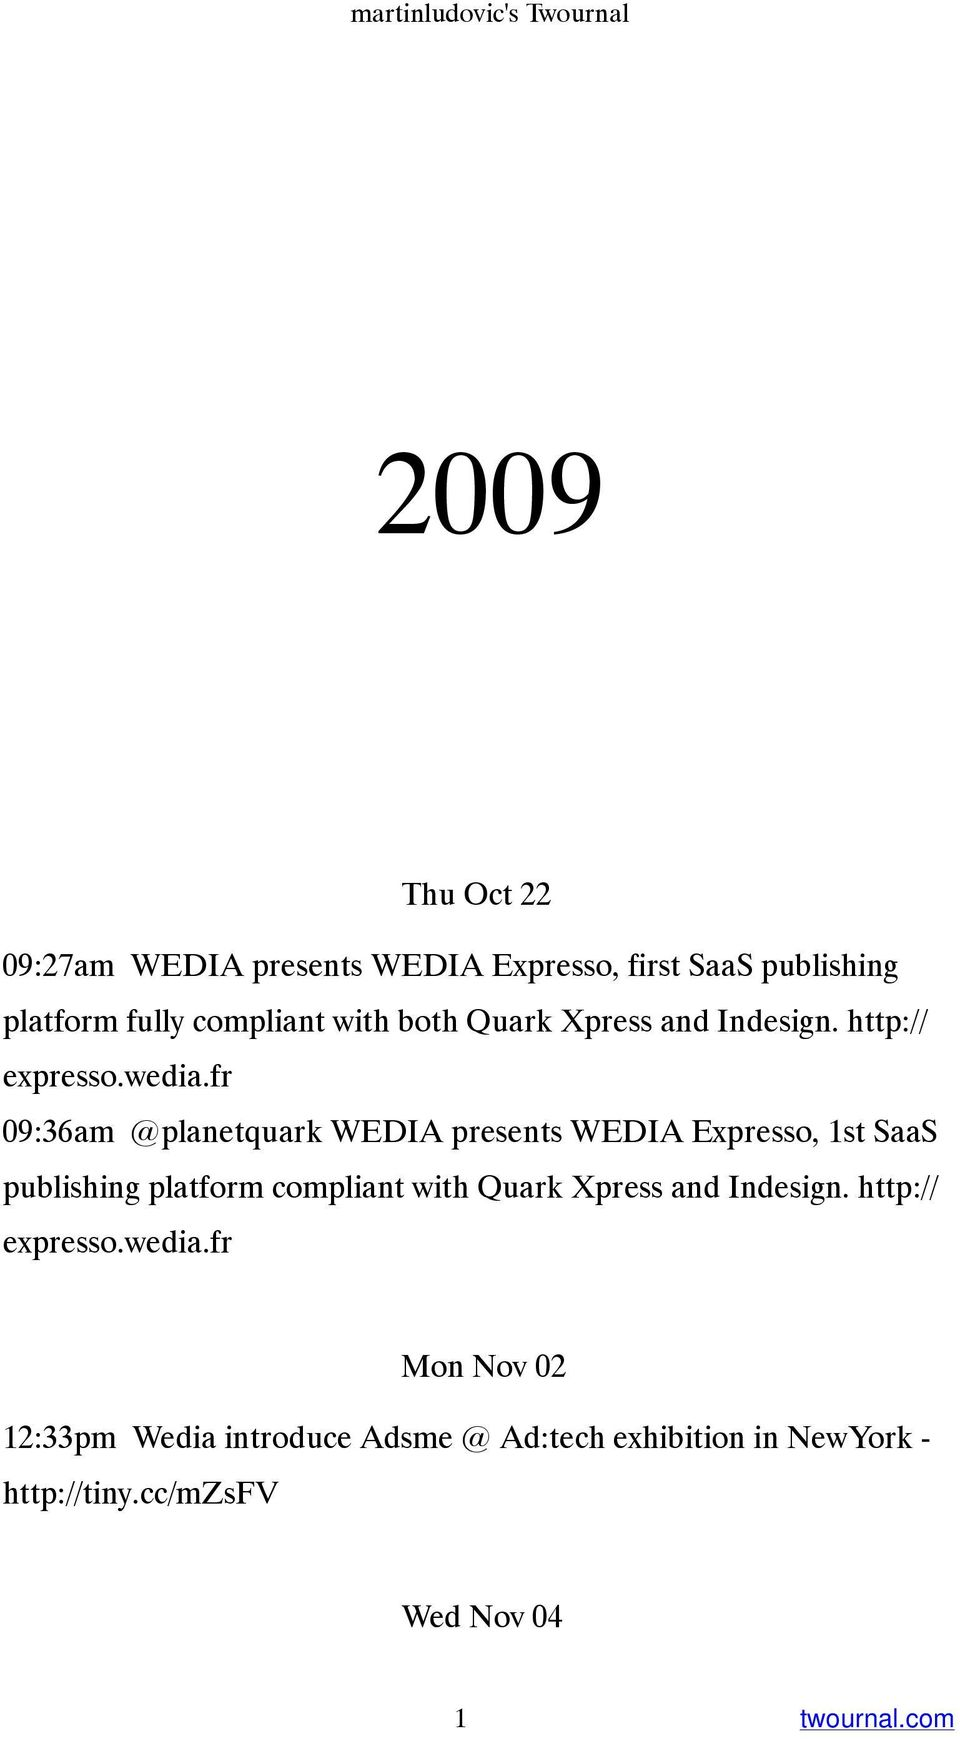 fr 09:36am @planetquark WEDIA presents WEDIA Expresso, 1st SaaS publishing platform compliant with Quark Xpress